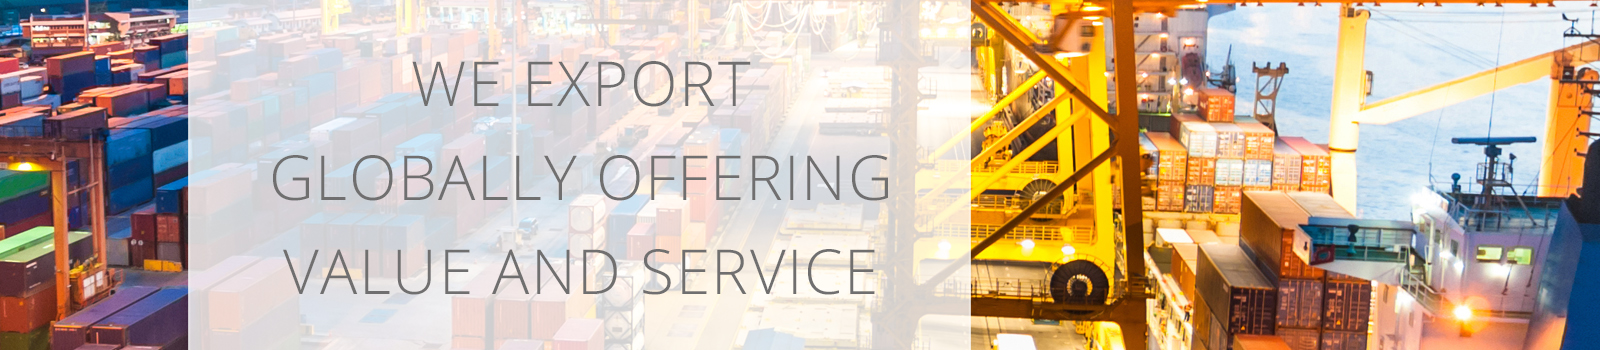 We Export Globally Offering Value and Service